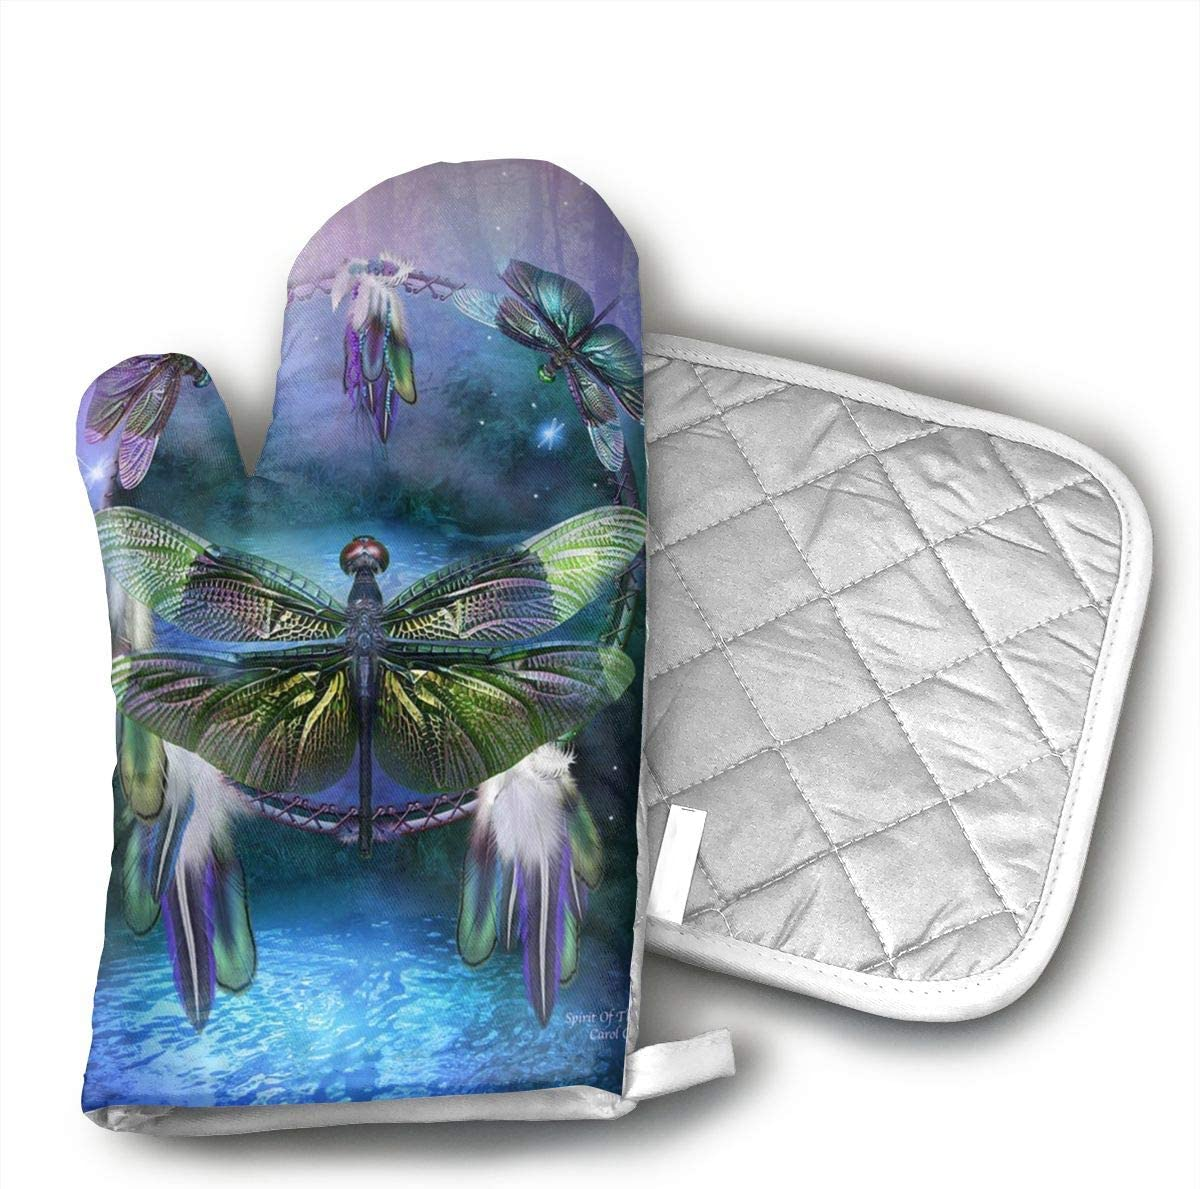 Klasl5 Dream Catcher Dragonfly Oven Mitts,Heat Resistant Oven Gloves,Non-Slip Cooking Gloves,Washable Kitchen Mitts for Baking, Barbecue.